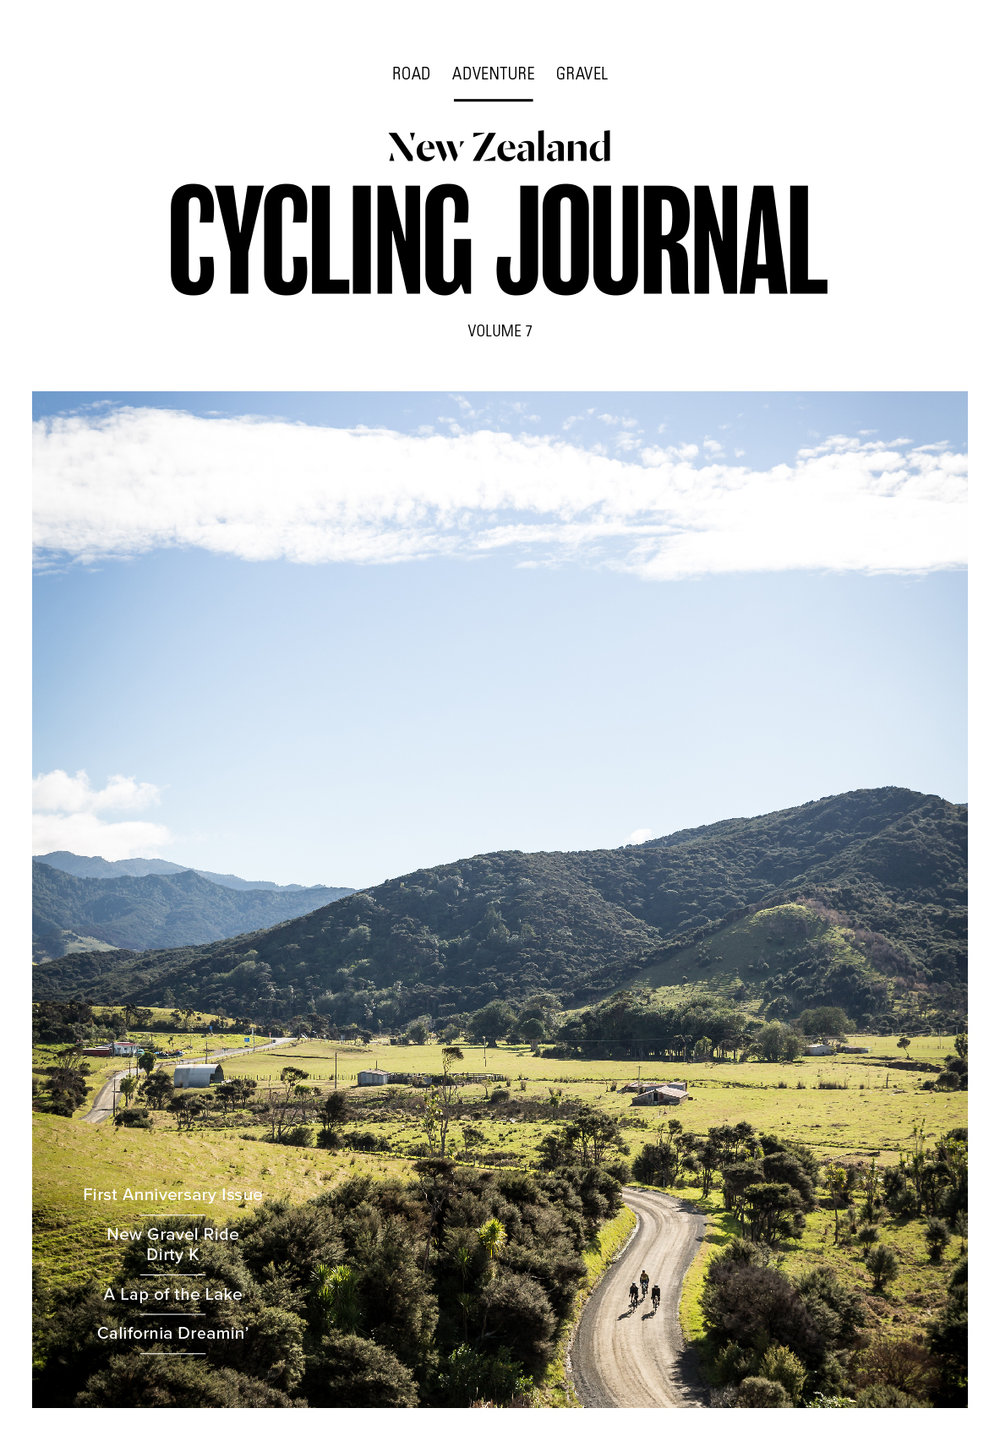 NZ Cycling Journal - Vol.7 Cover.jpg